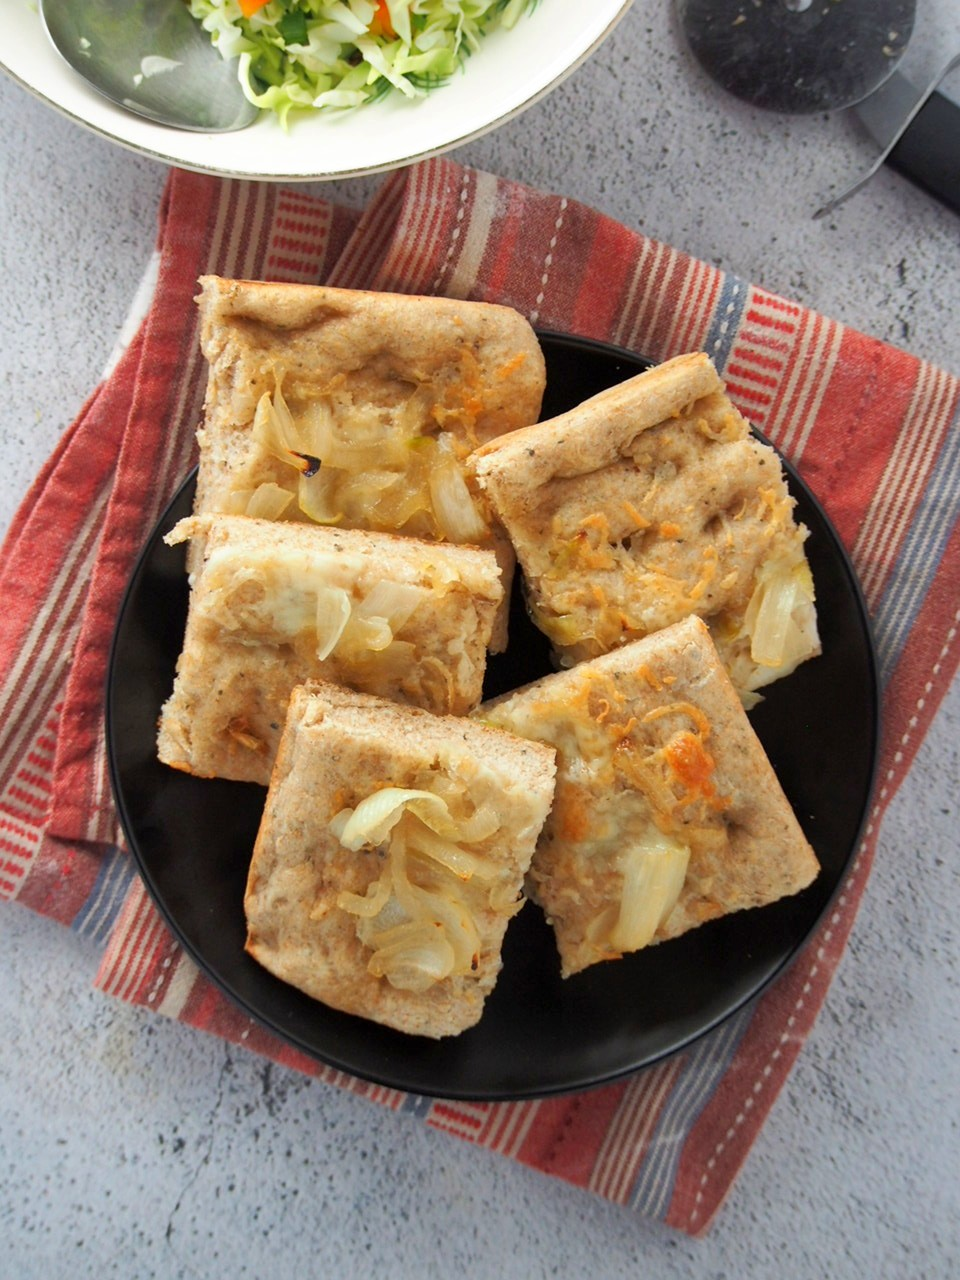 Slices of whole wheat focaccia on a plate.